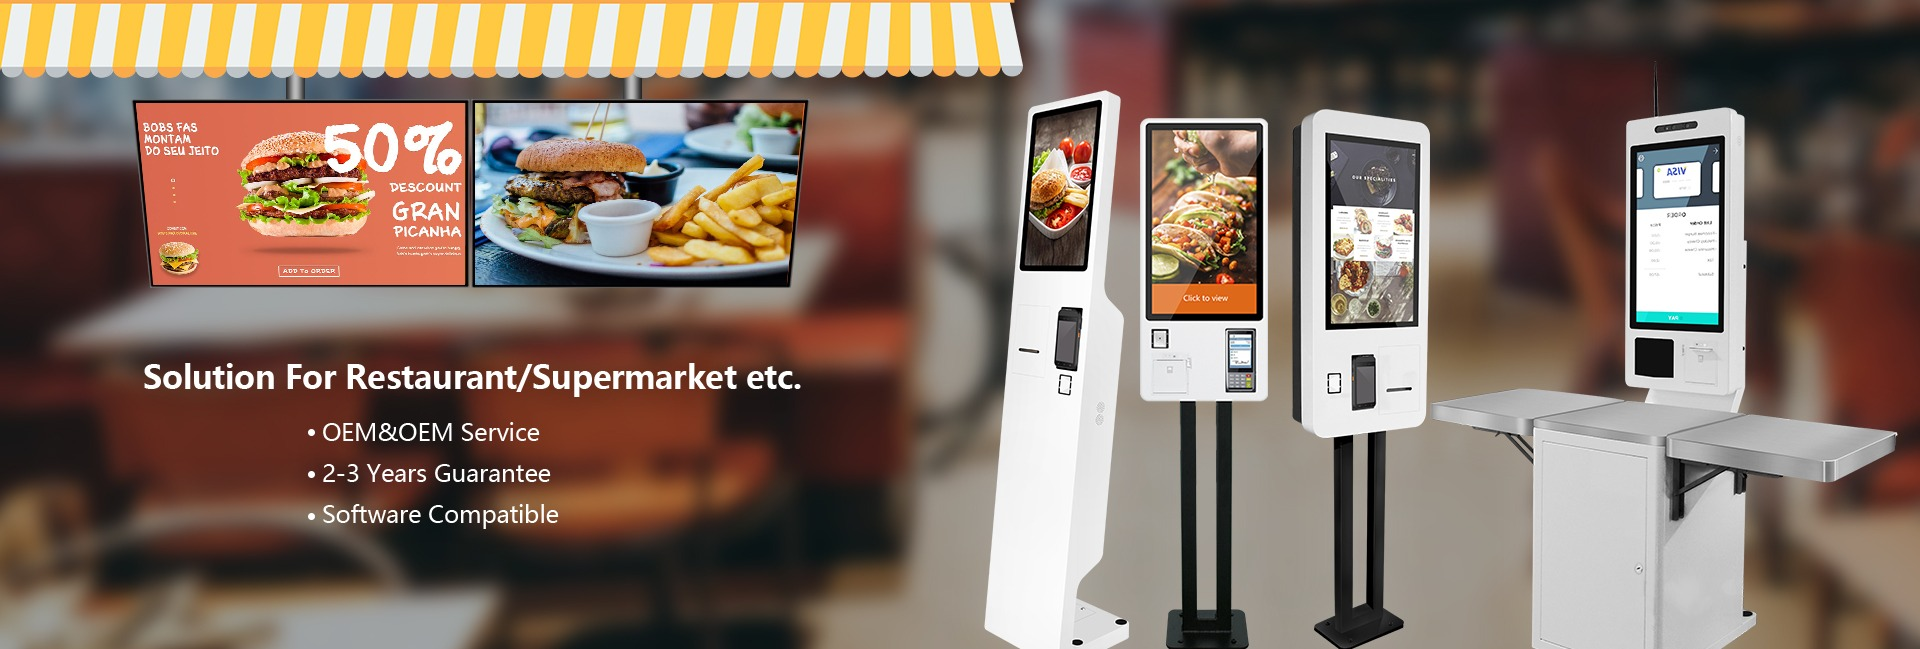 best epos systems uk Digital Screens and self order kiosk